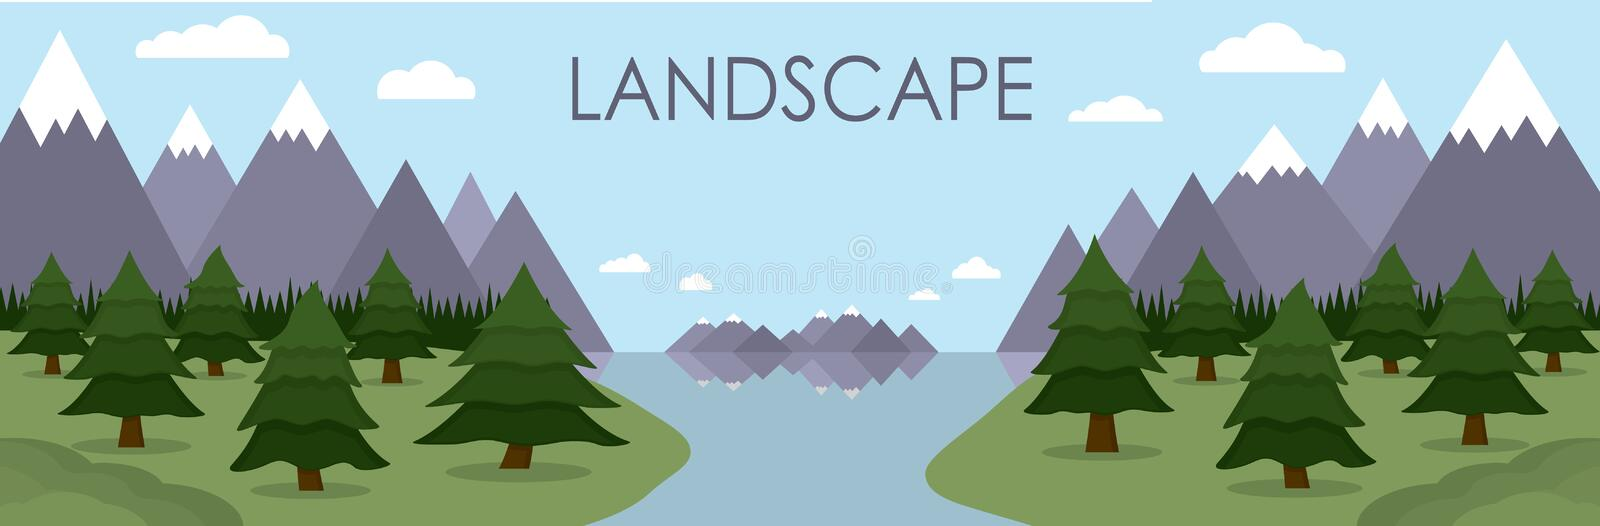 Flat illustration of mountain landscape reflected in lake surrounded by pine tree forest. stock illustration